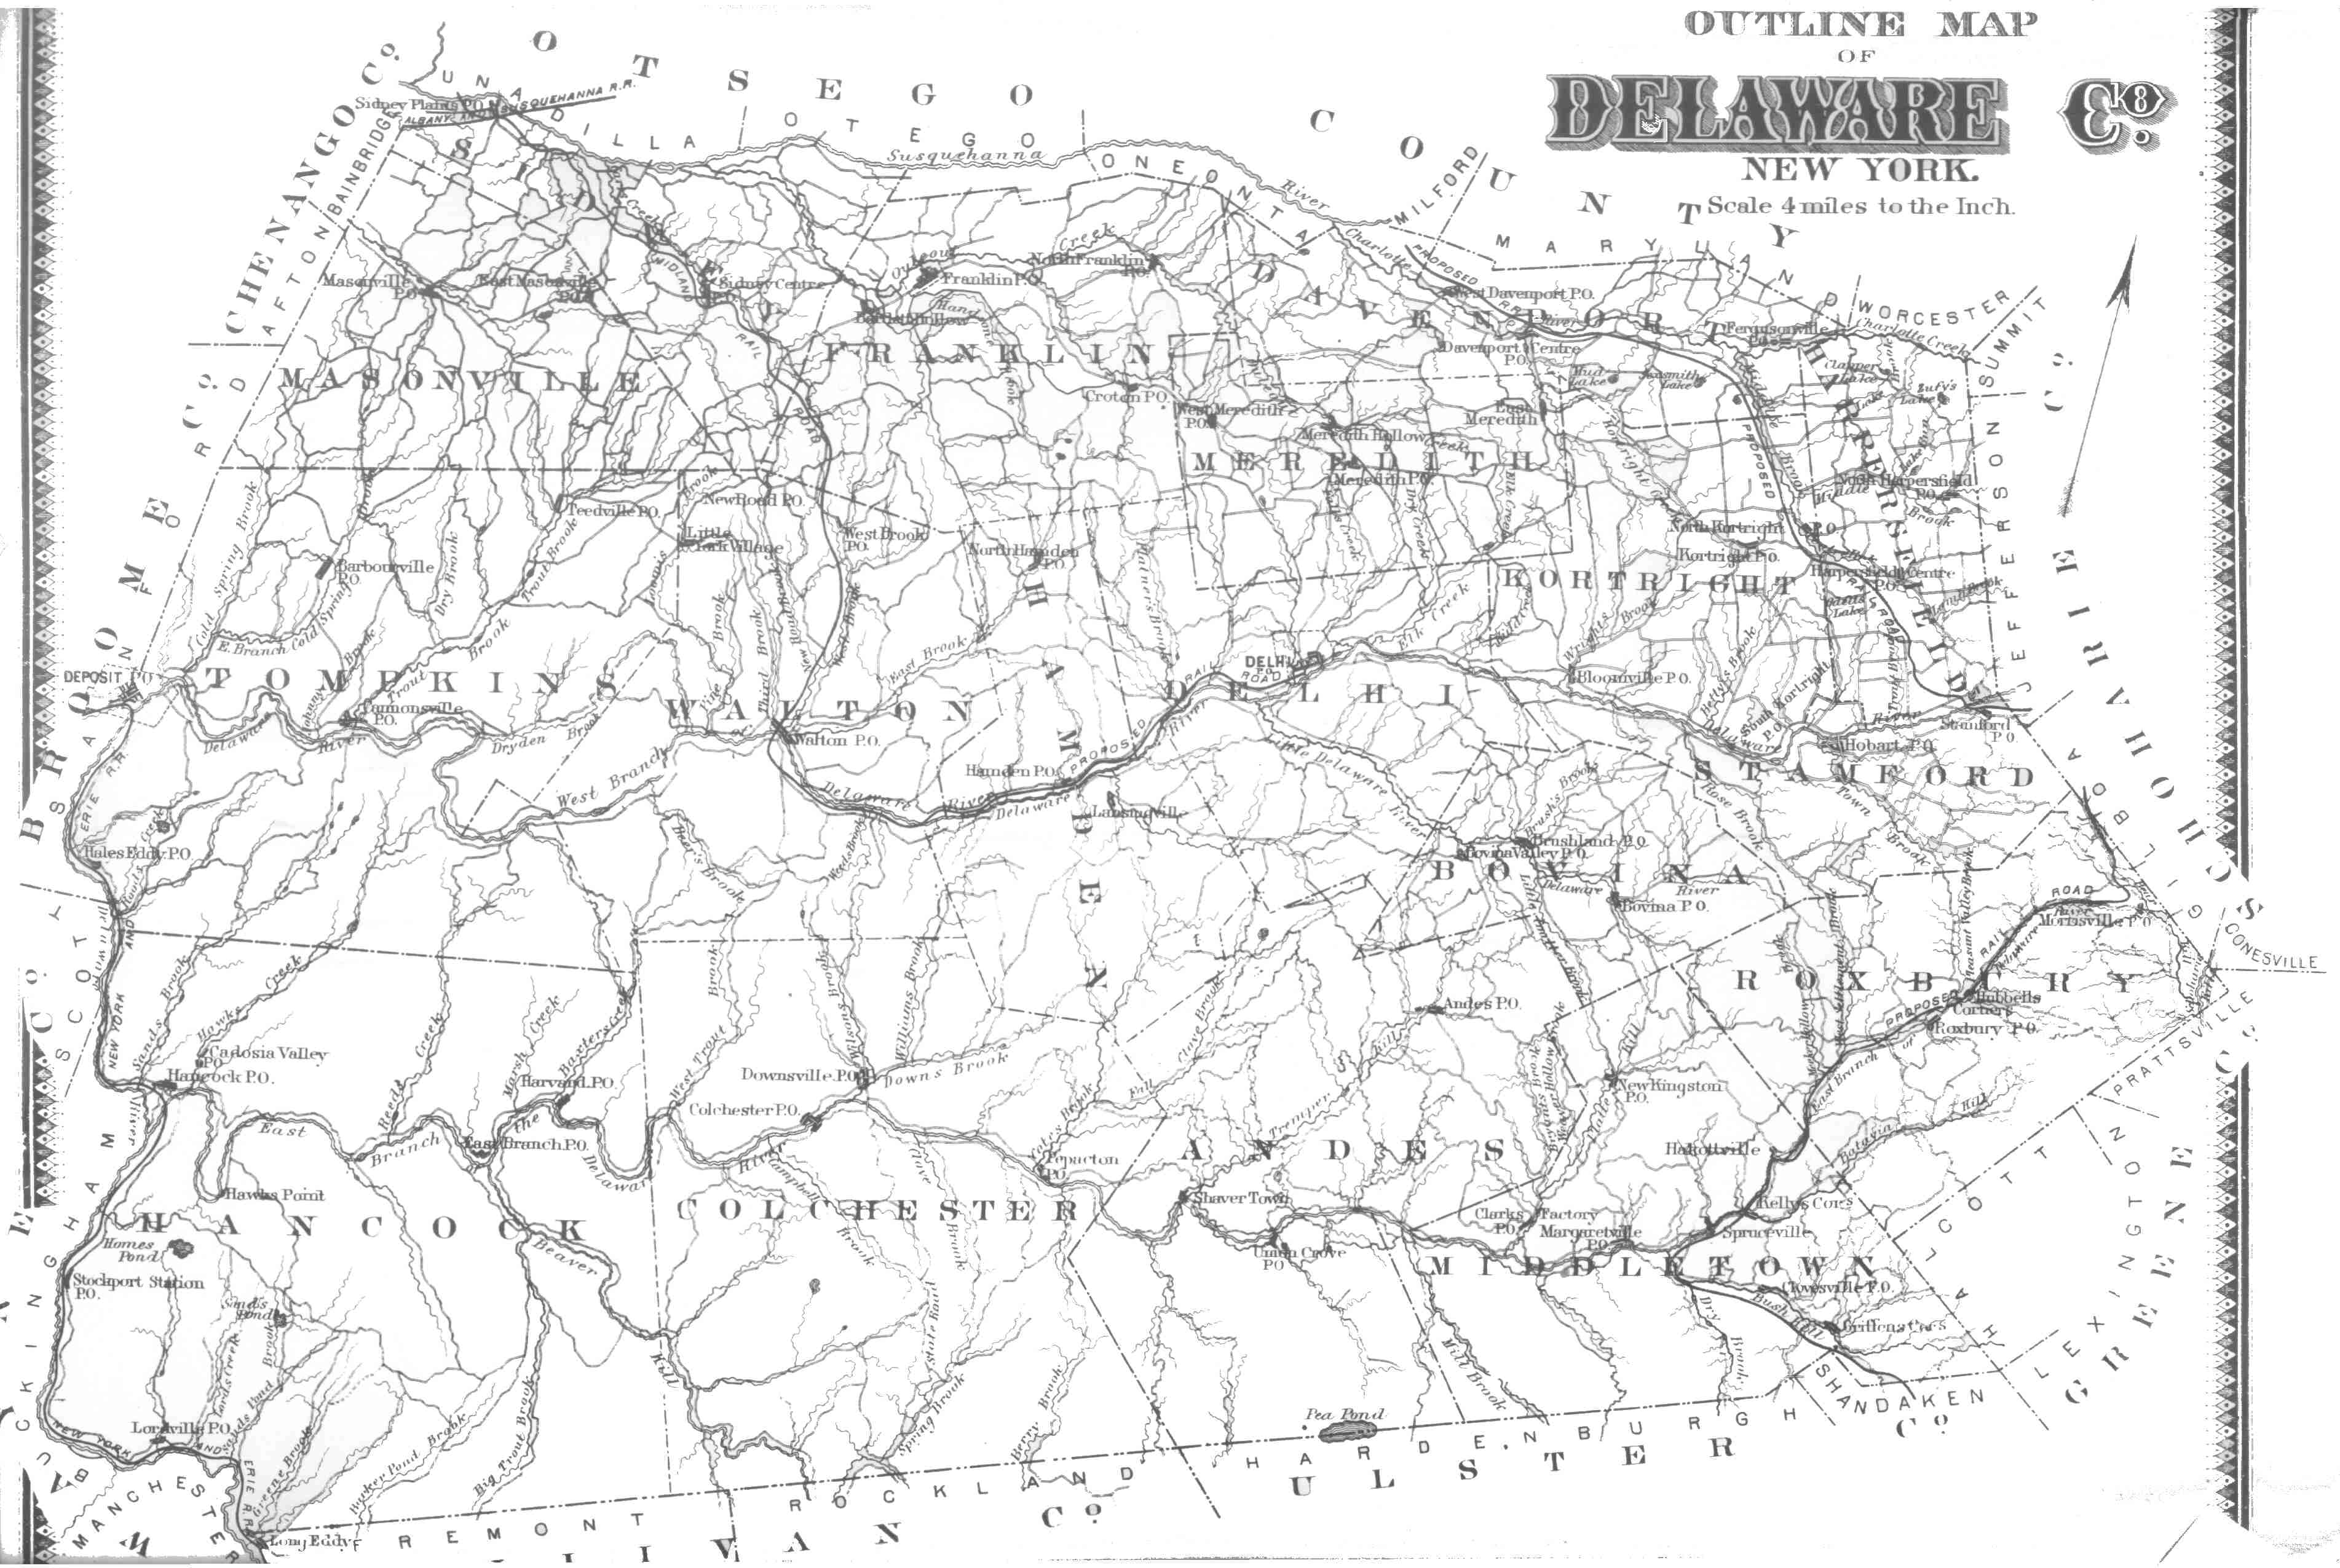 Index to Maps of Delaware County - Delaware County NY ... on delaware university map, delaware bay map, detailed delaware map, maryland delaware road map, allegheny county, schuylkill county, west chester, berks county, lackawanna county, fayette county, darby borough map, jefferson county, montgomery county, delaware elevation map, philadelphia map, emmaus pa map, bucks county, indiana map, chester county, delaware topographic map, delaware ohio map, delaware state line map, franklin county, delaware district map, hudson valley region map, delaware state counties map, state of delaware map, new castle delaware map, cumberland county, philadelphia county, delaware florida map, lancaster county, havertown pa map, york county, adams county, washington county, delaware valley, delaware town map,